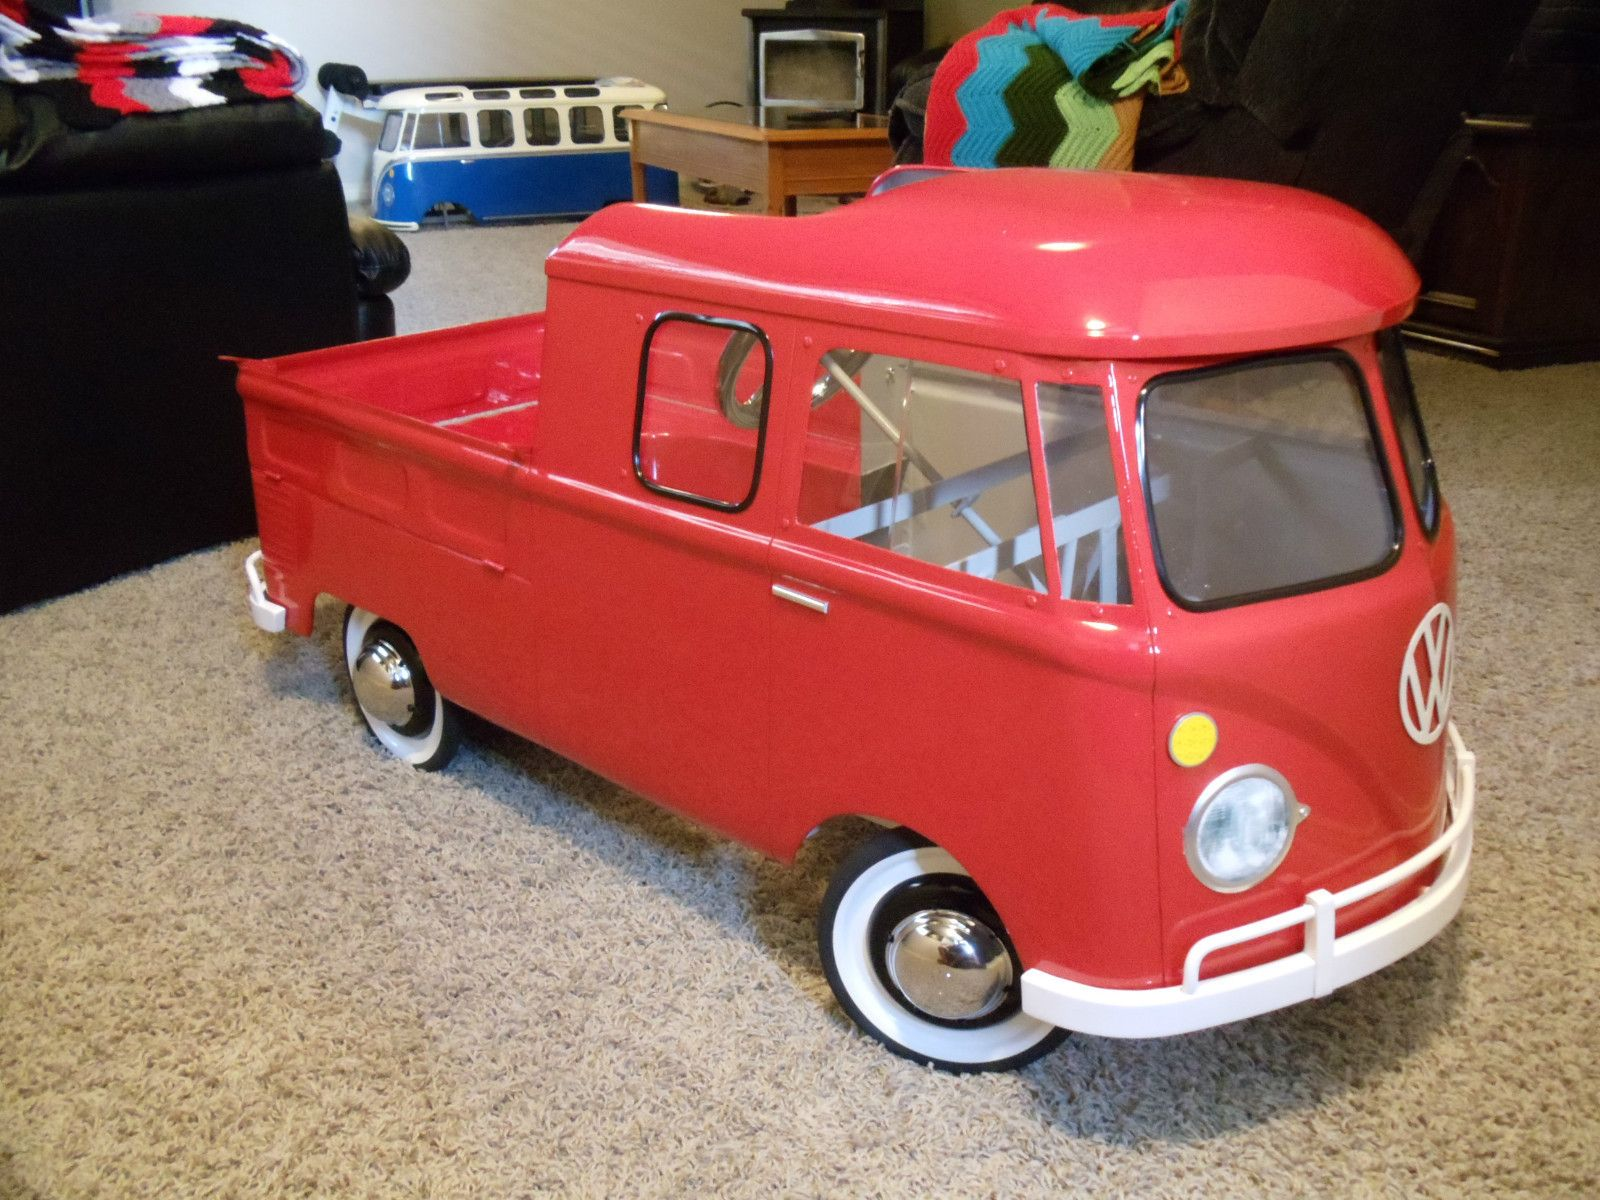 vw volkswagen type 2 double cab pedal car samba bus crazy carsbeetle bug kids